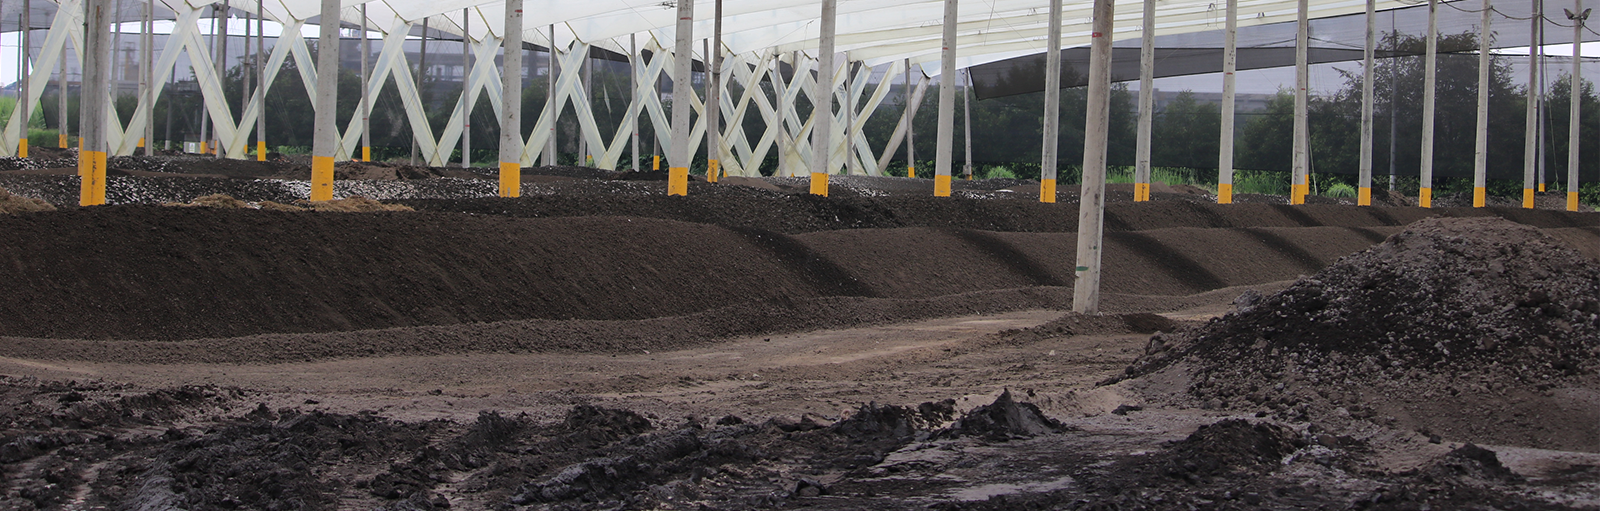 Control of odours in sludges: Compost Processing Plant in Ingenio Del Cauca